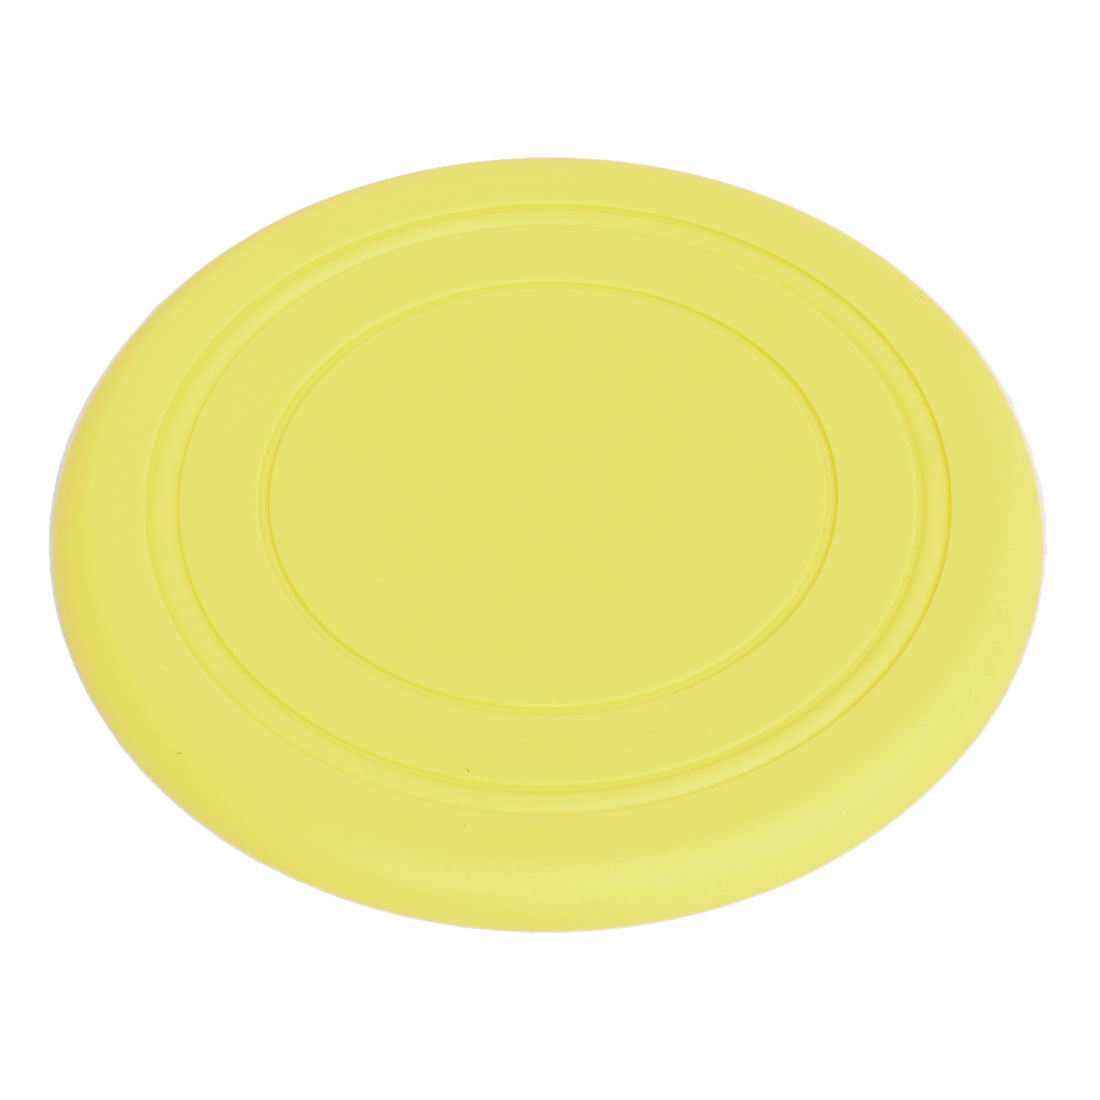 "Yellow Round Silicone 6.9"" Dia Exercising Flying Frisbee Toy for Pet Doggie"